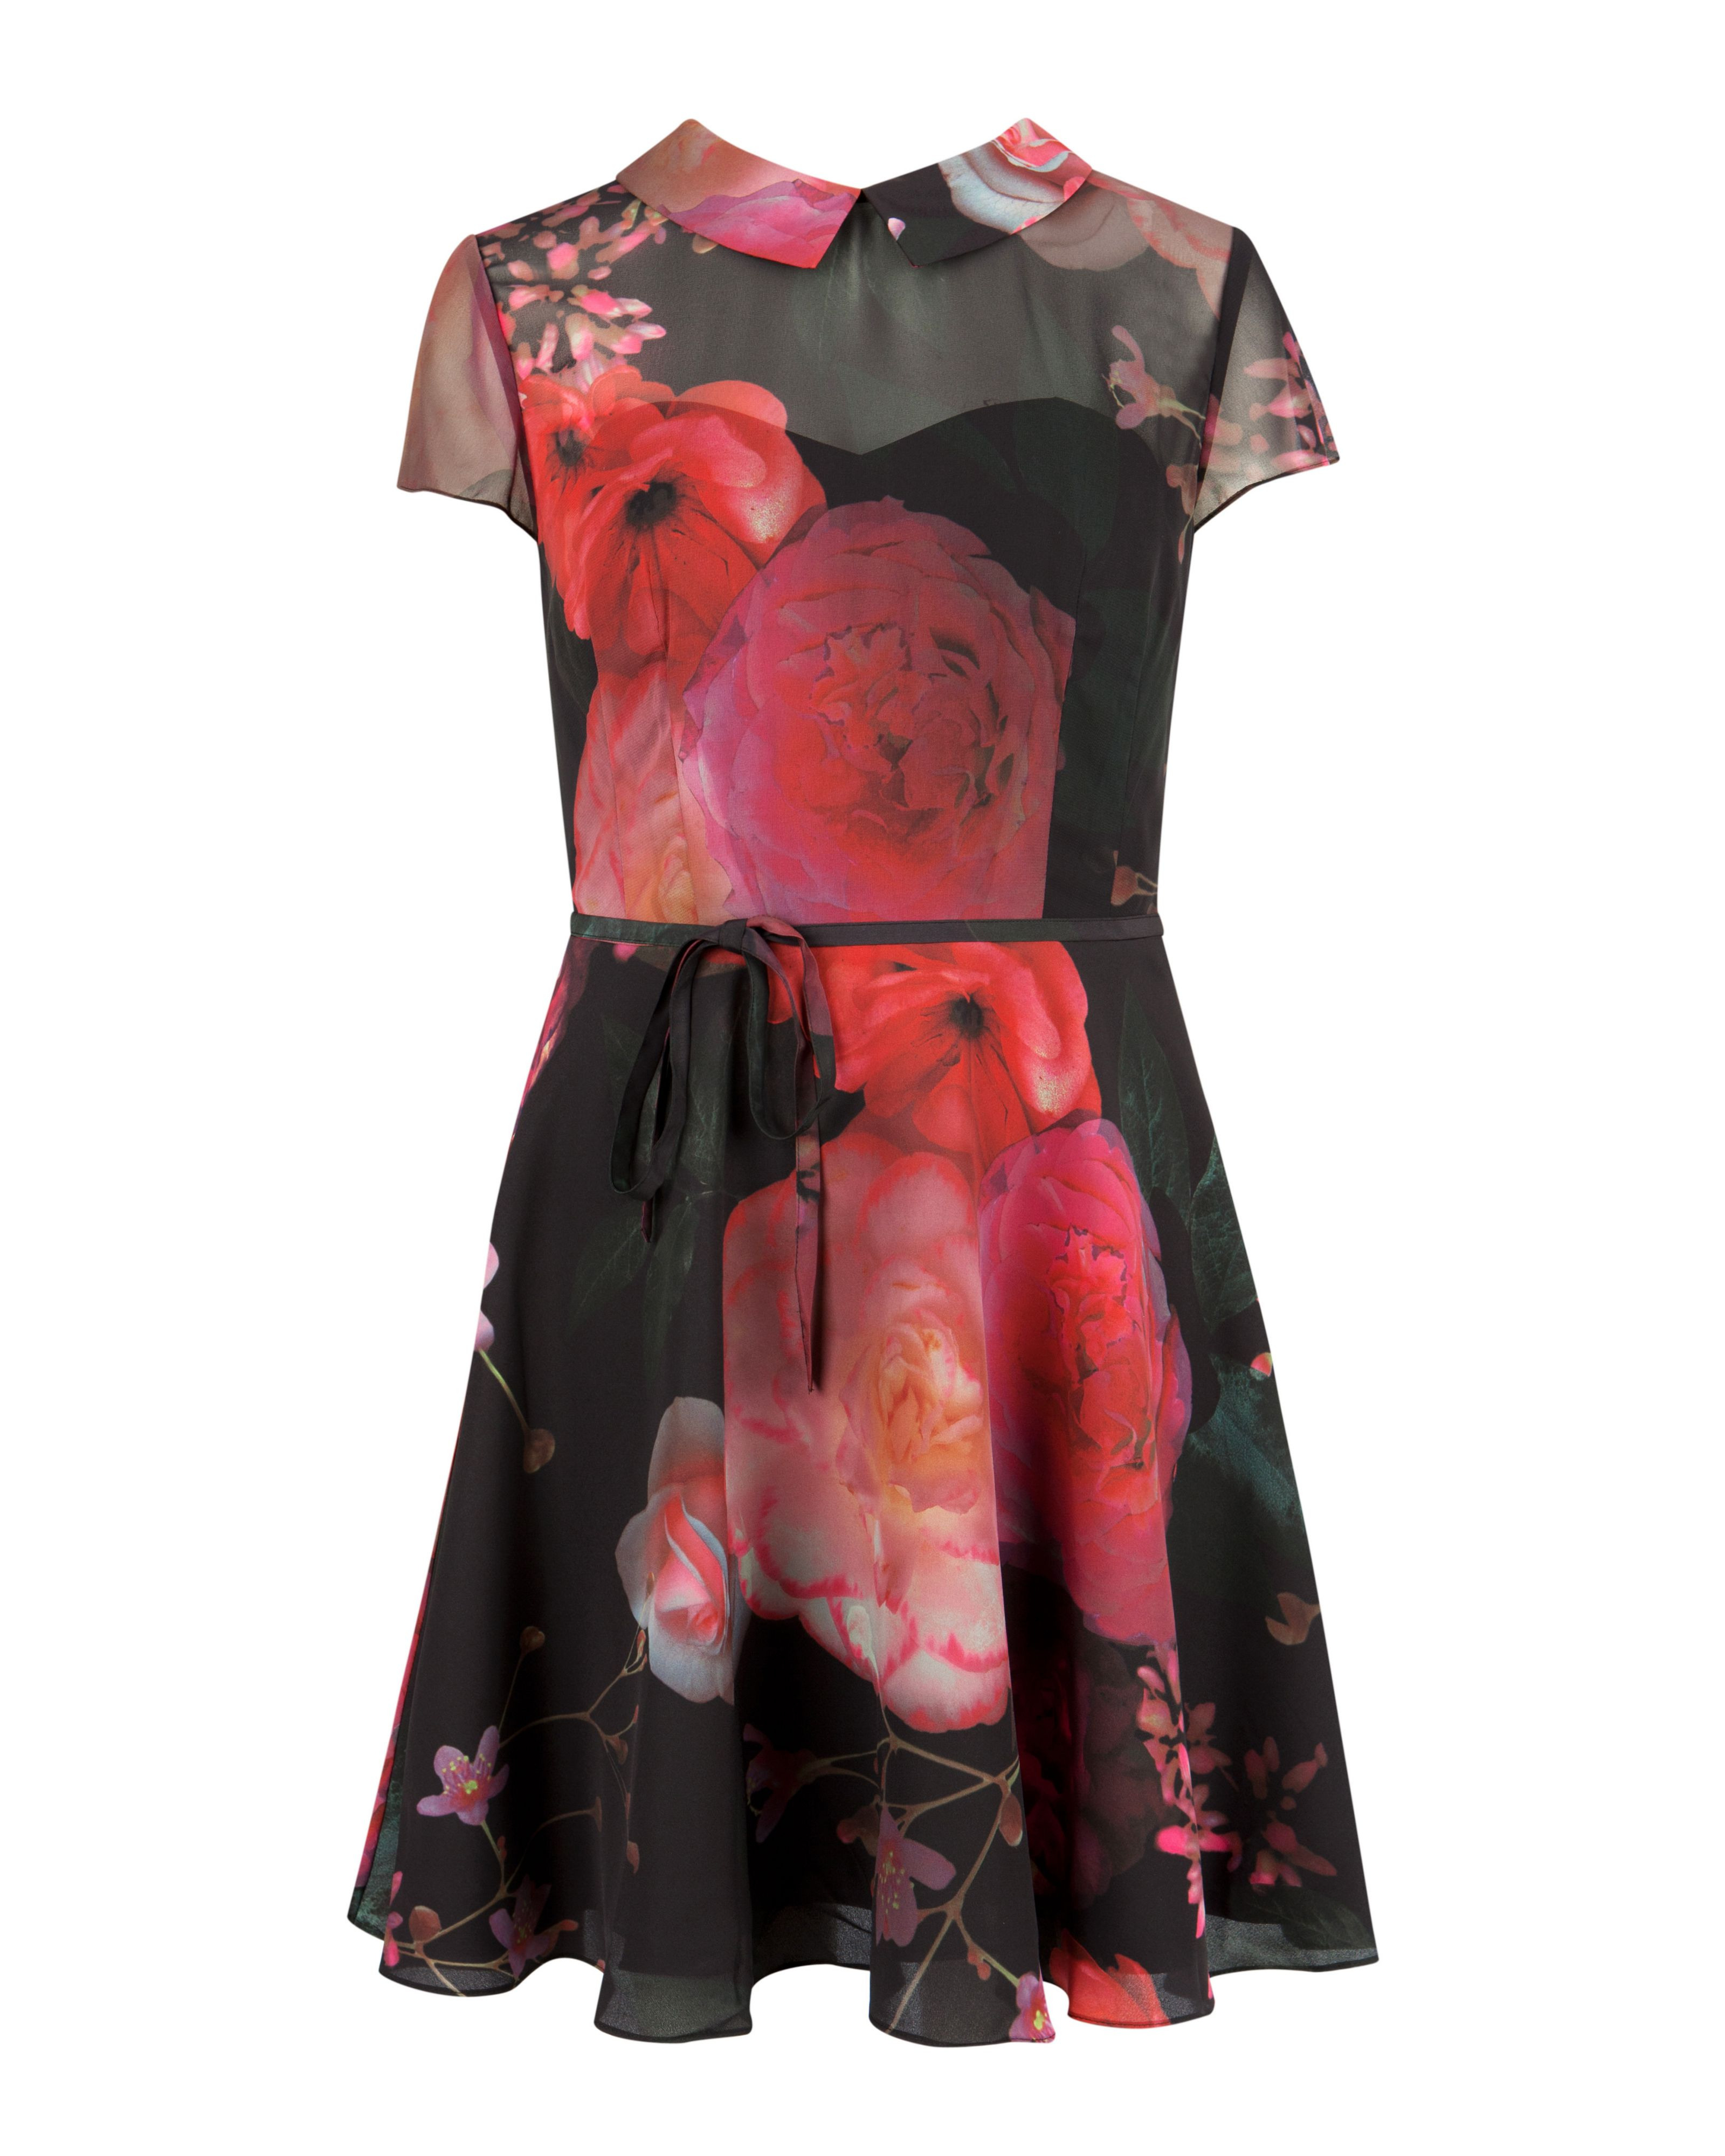 Eudorra natural kingdom print dress